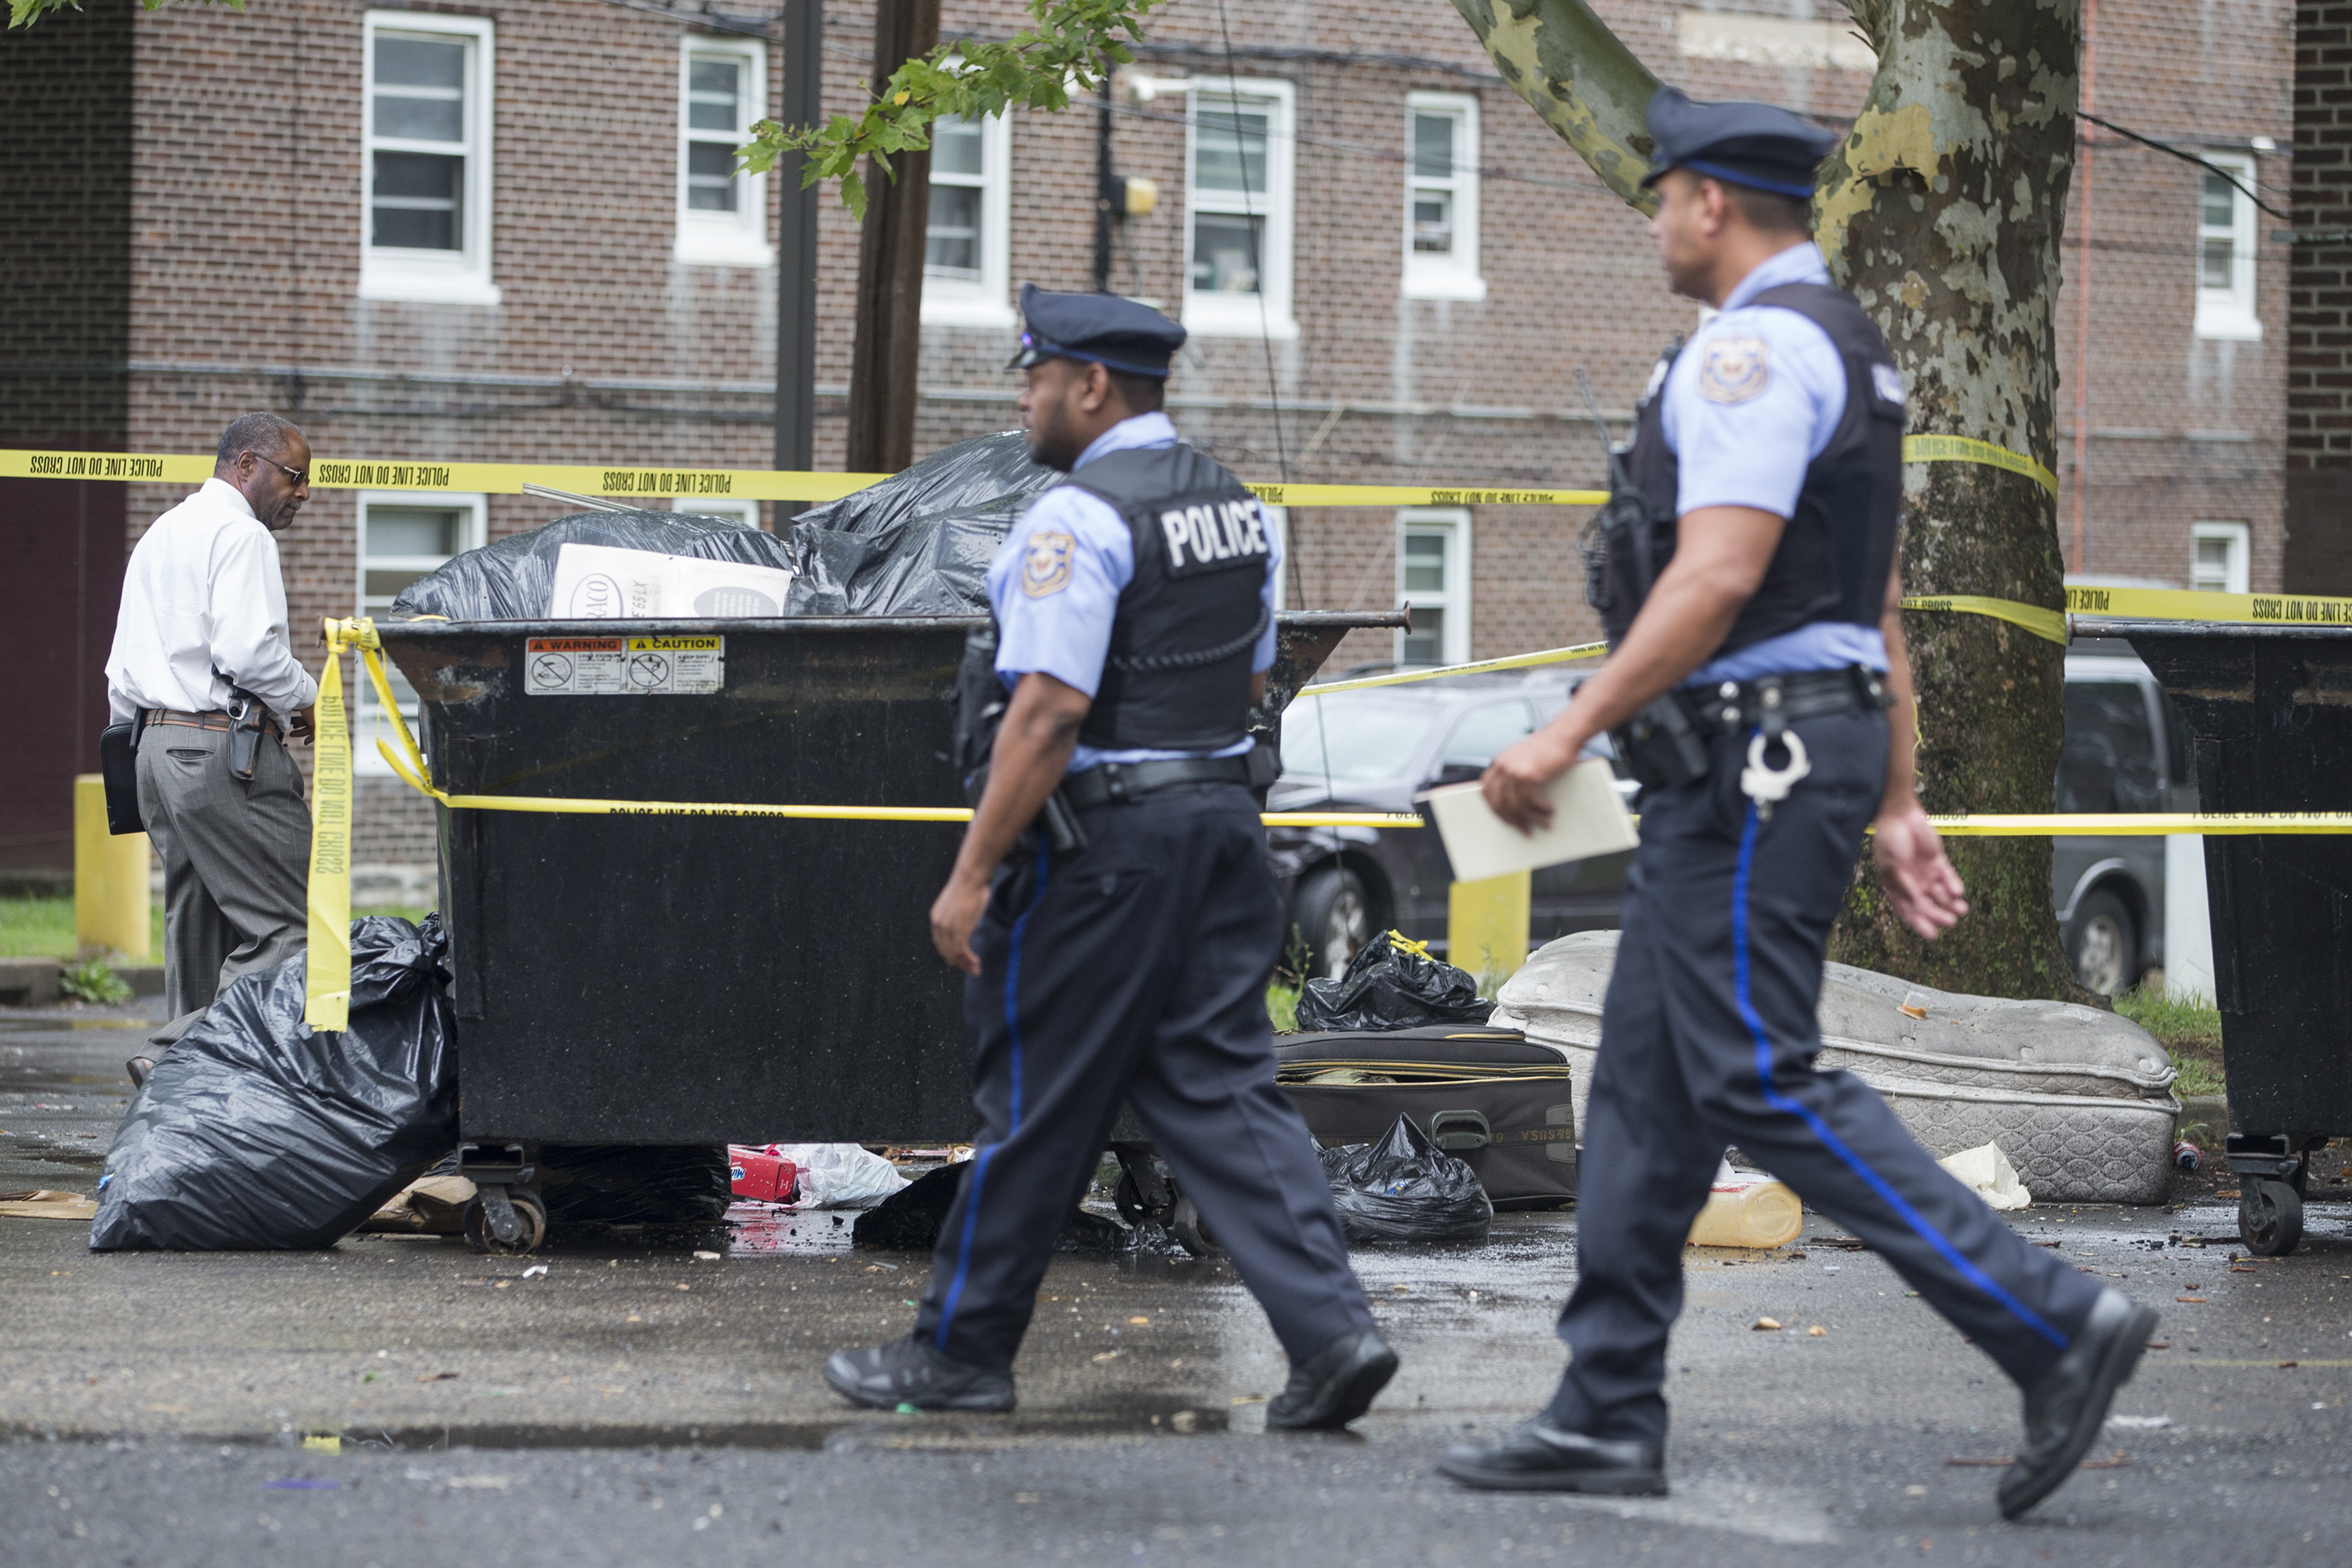 A decomposing body was found inside the suitcase seen here between two Philadelphia police officers on Tuesday, July 17, 2018, at the Bartram Gardens housing project in Southwest Philadelphia.